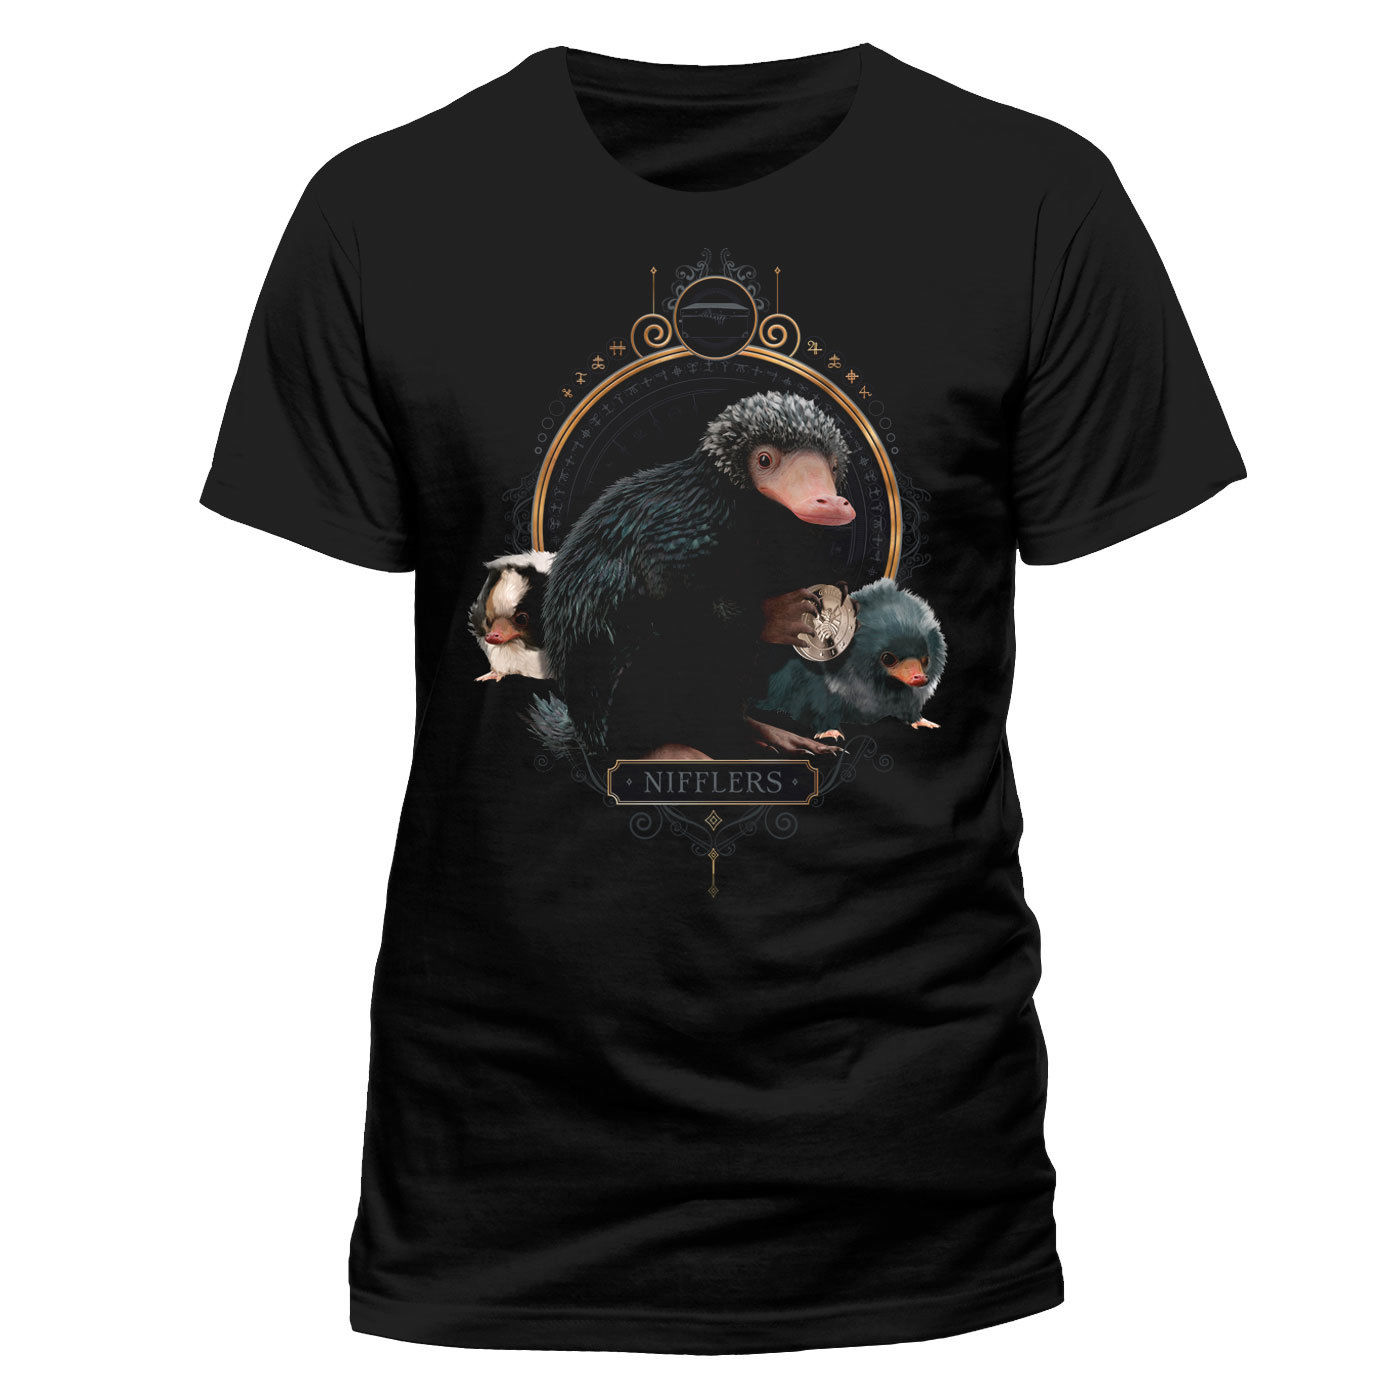 OFFICIAL FANTASTIC BEASTS - CRIMES OF GRINDELWALD - NIFFLERS BLACK T-SHIRT (NEW) Comfortable t shirt,Casual Short Sleeve TEE